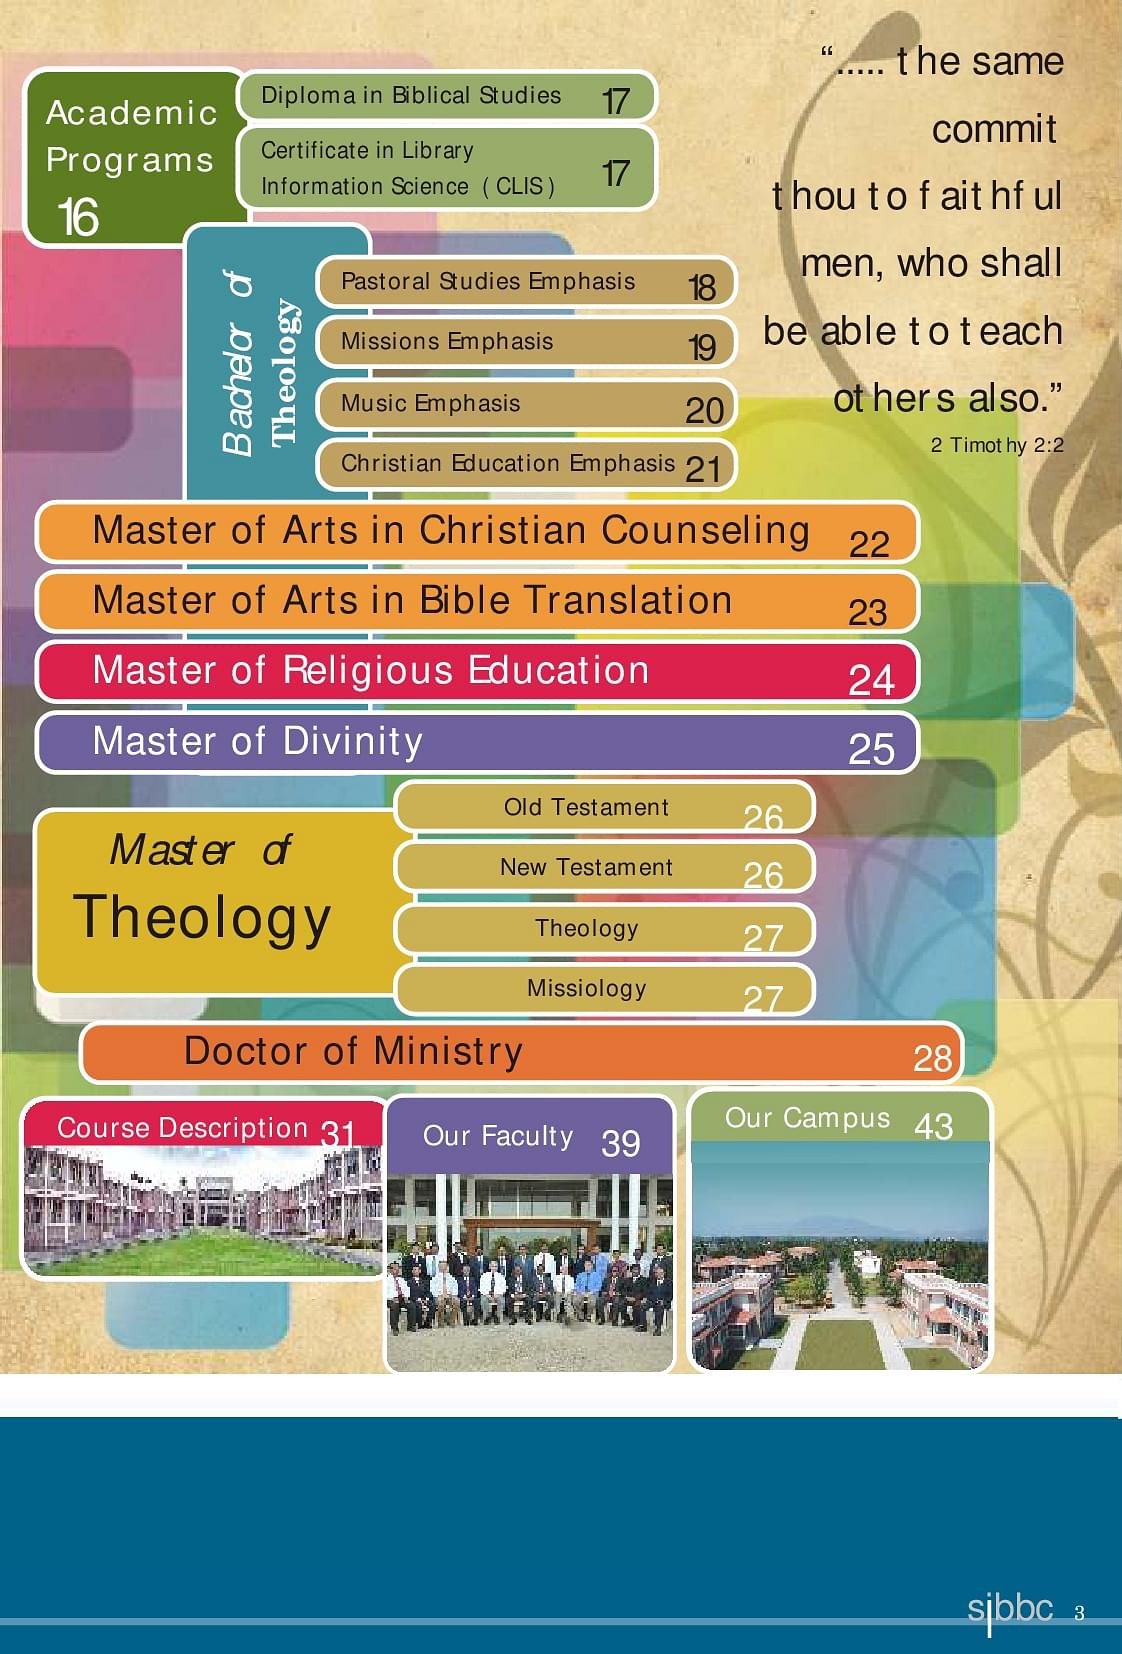 South India Baptist Bible College and Seminary, Coimbatore